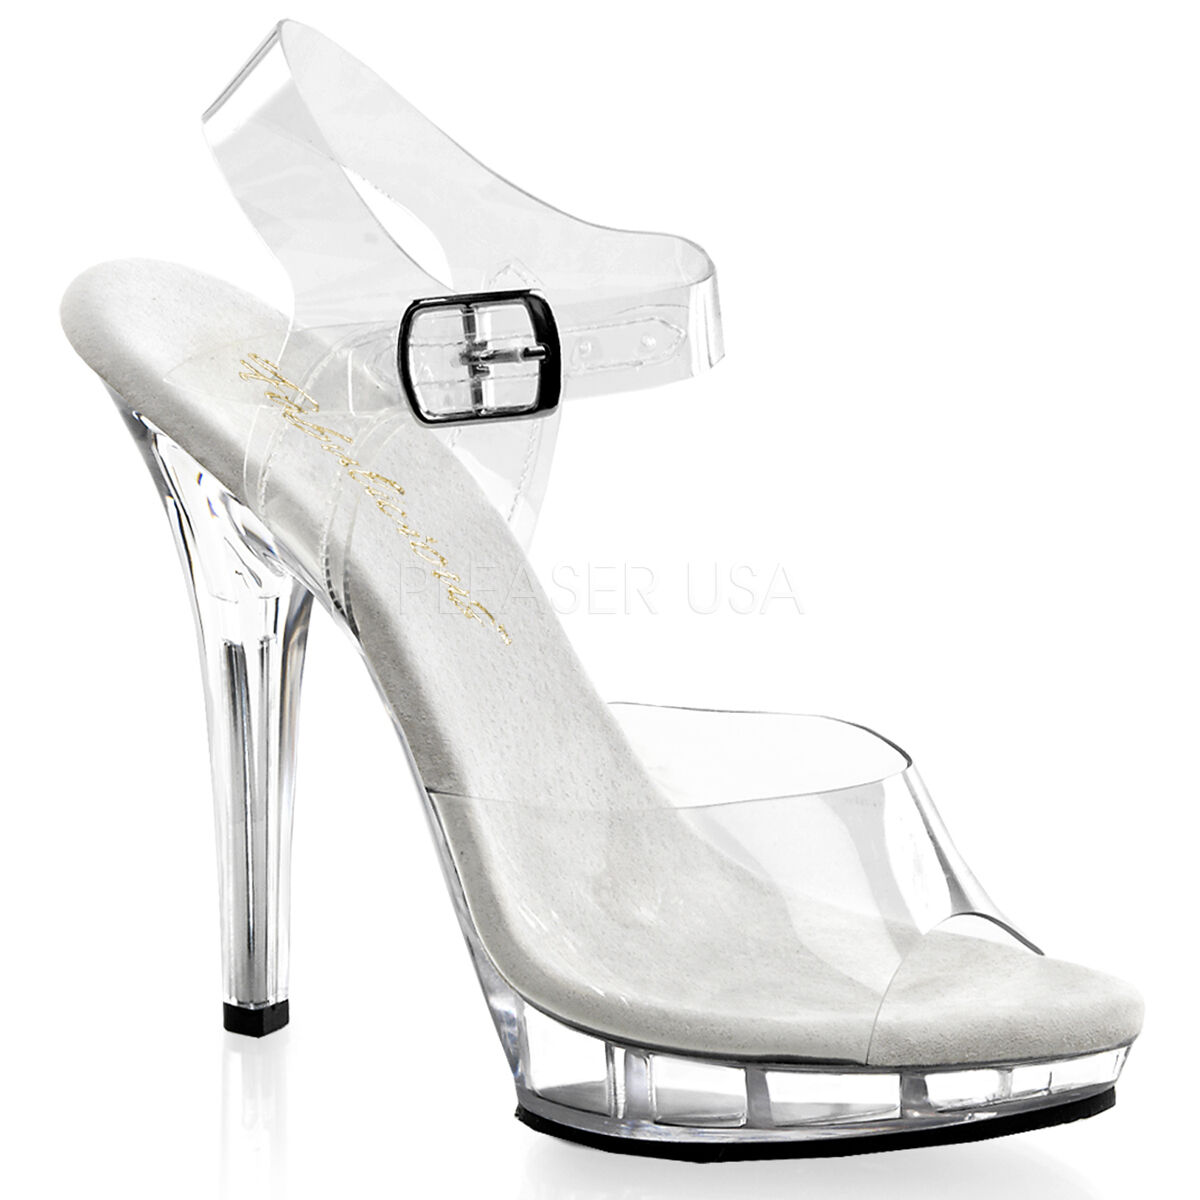 Fabulicius Lip 108 Clear Transparent Slippers Stiletto Heel Ankle Strap Sandals